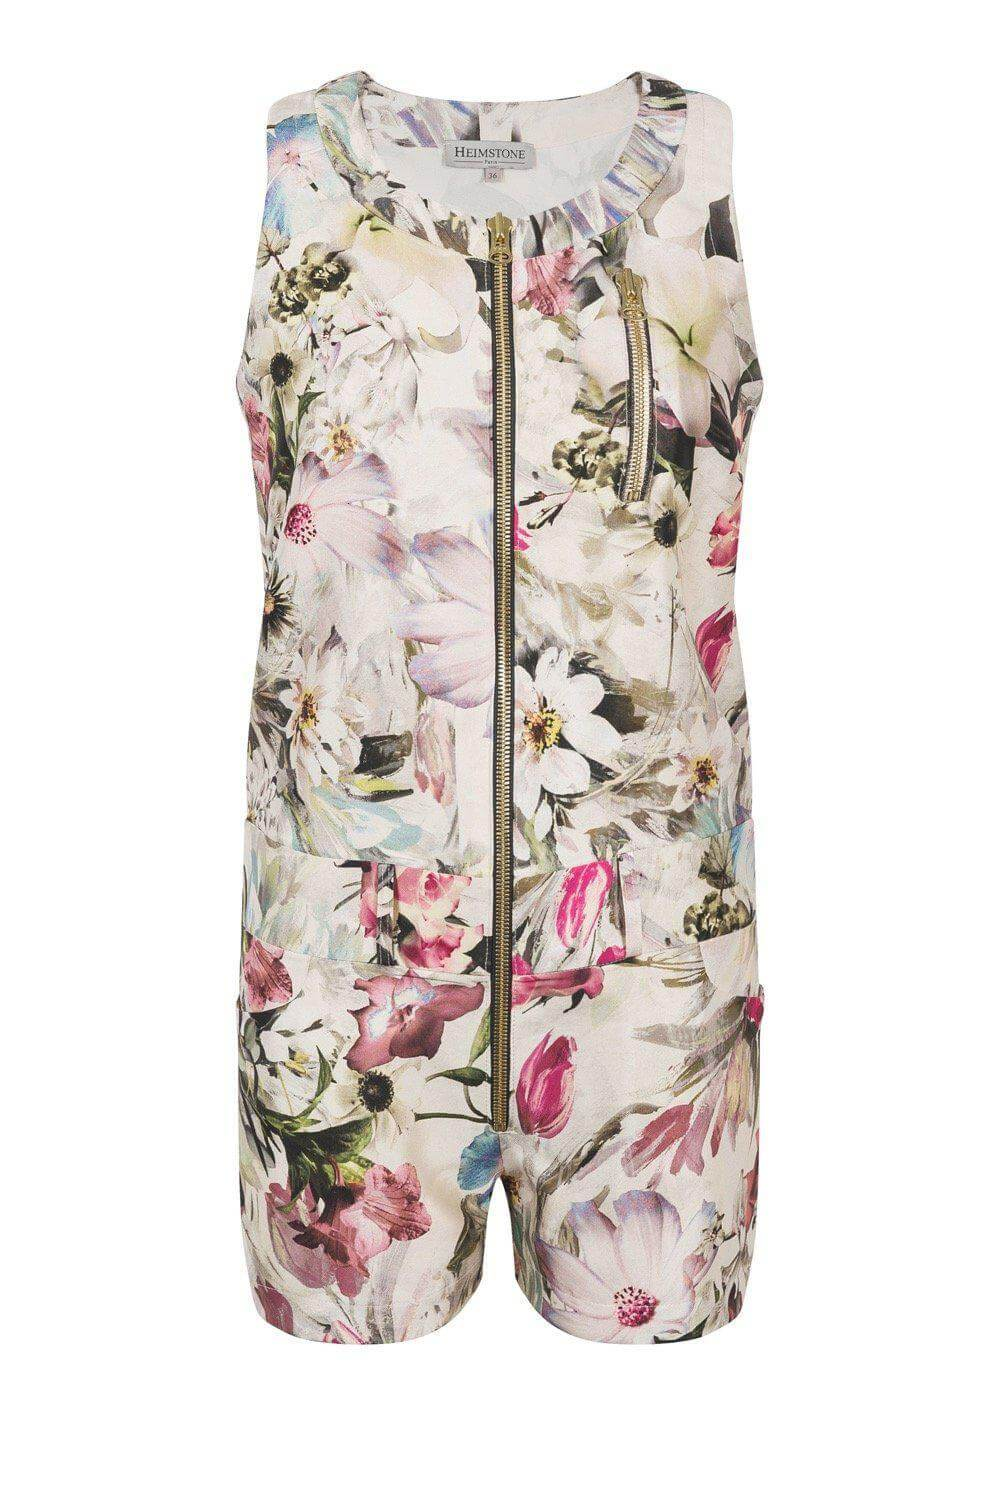 Beetle playsuit in floral canvas